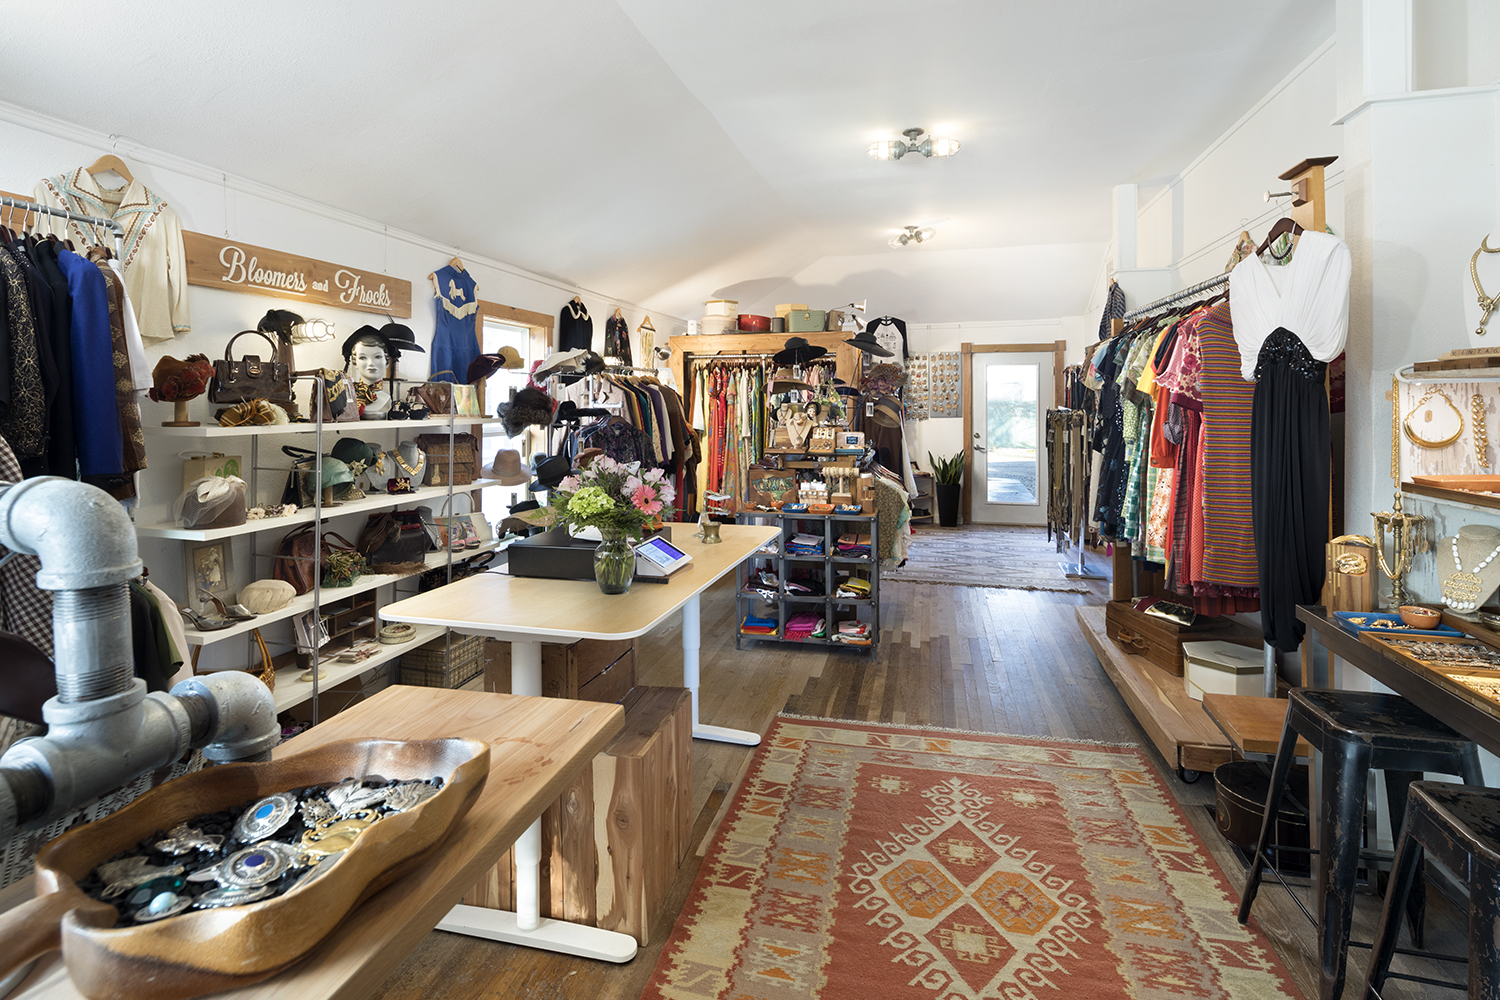 Bloomers and Frocks Interior VIntage Clothing Boutique